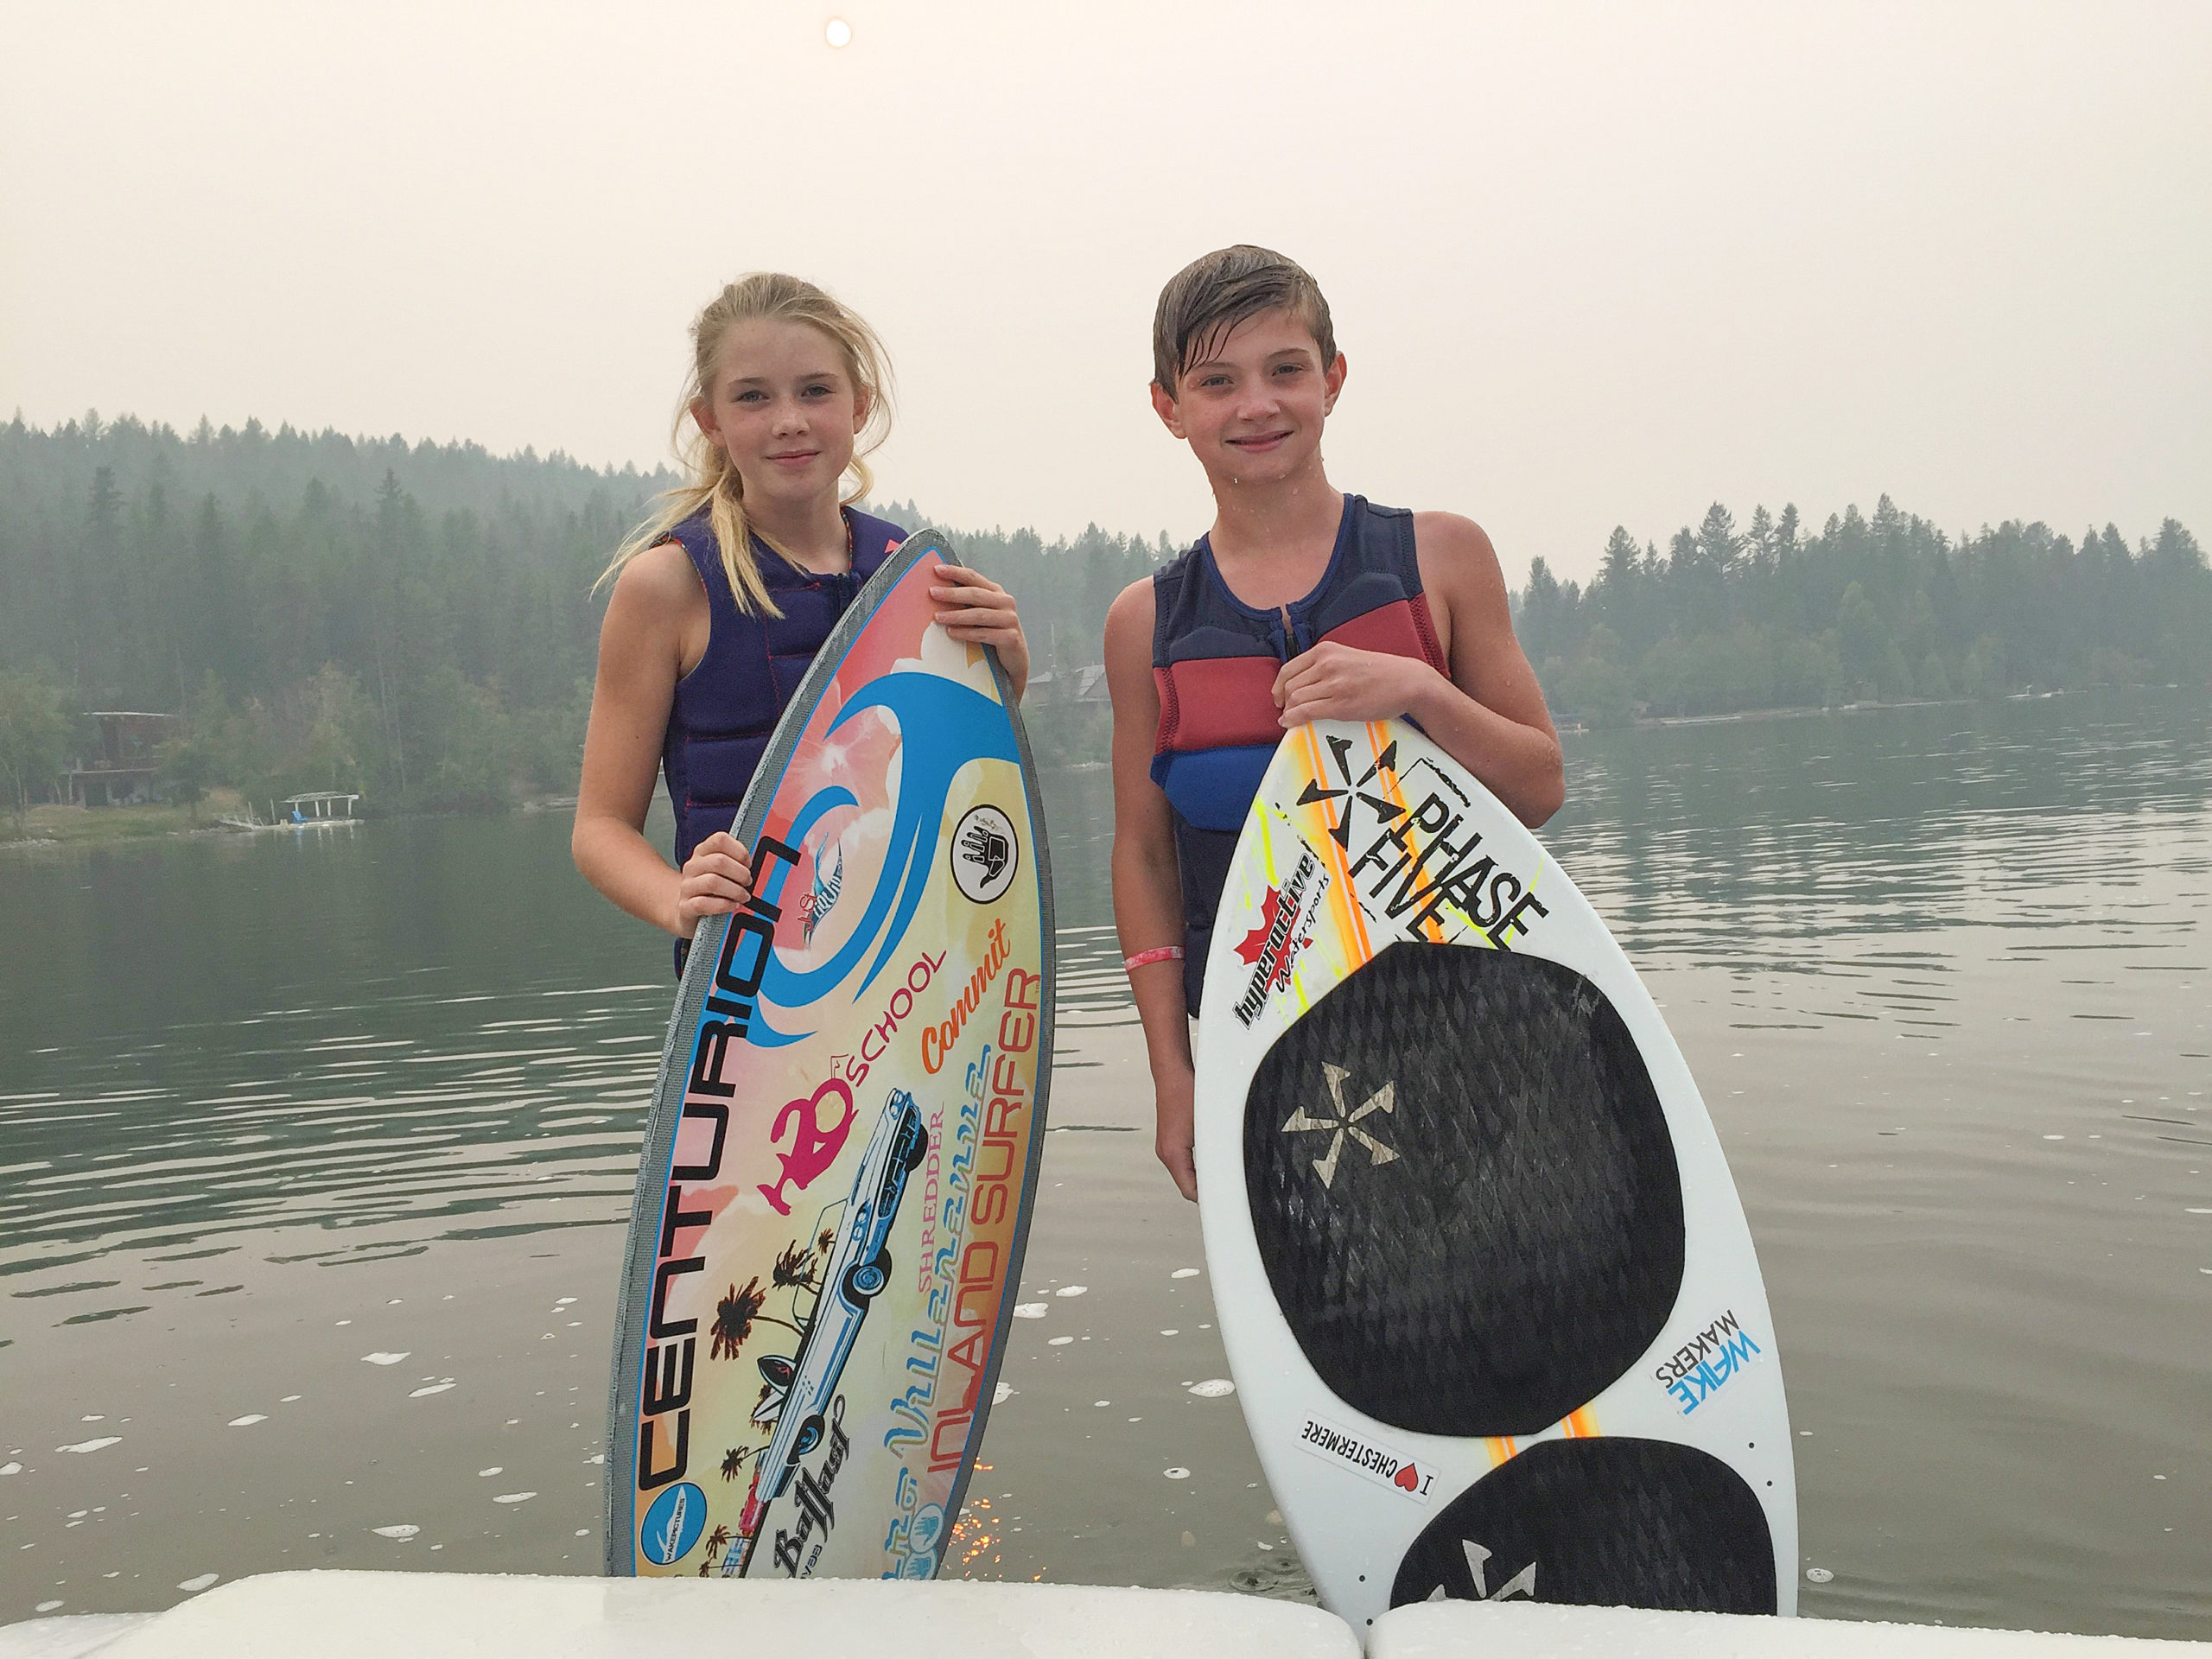 East Kootenay wake surfers competing at World Championships